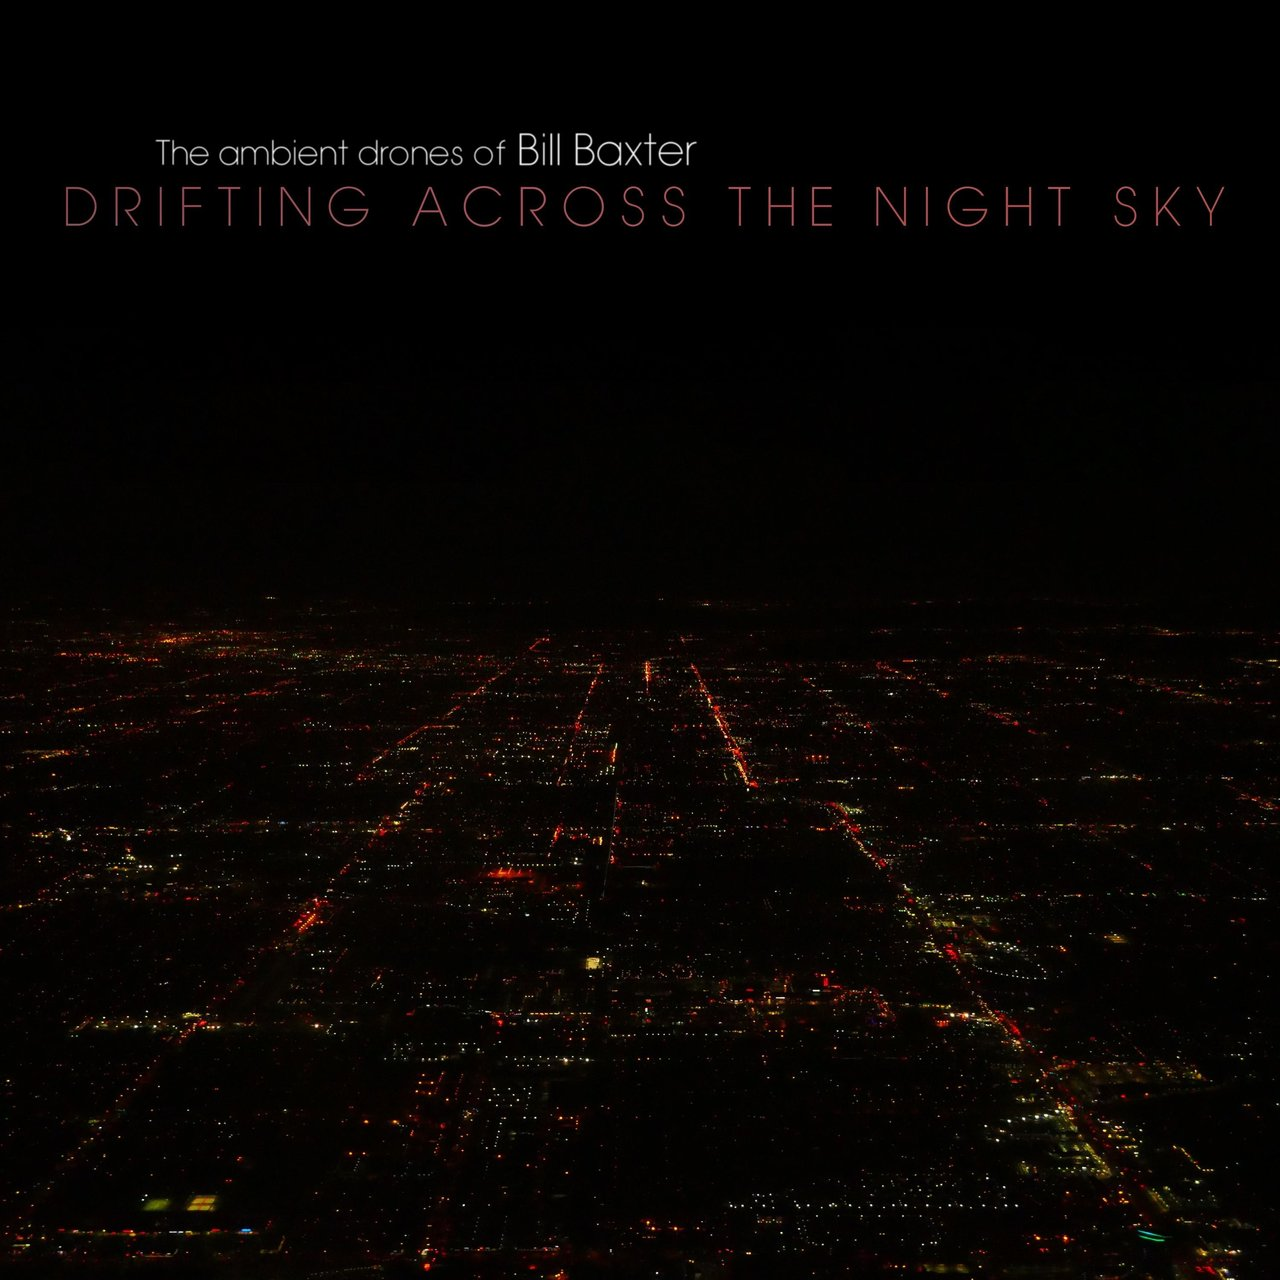 Drifting Across the Night Sky